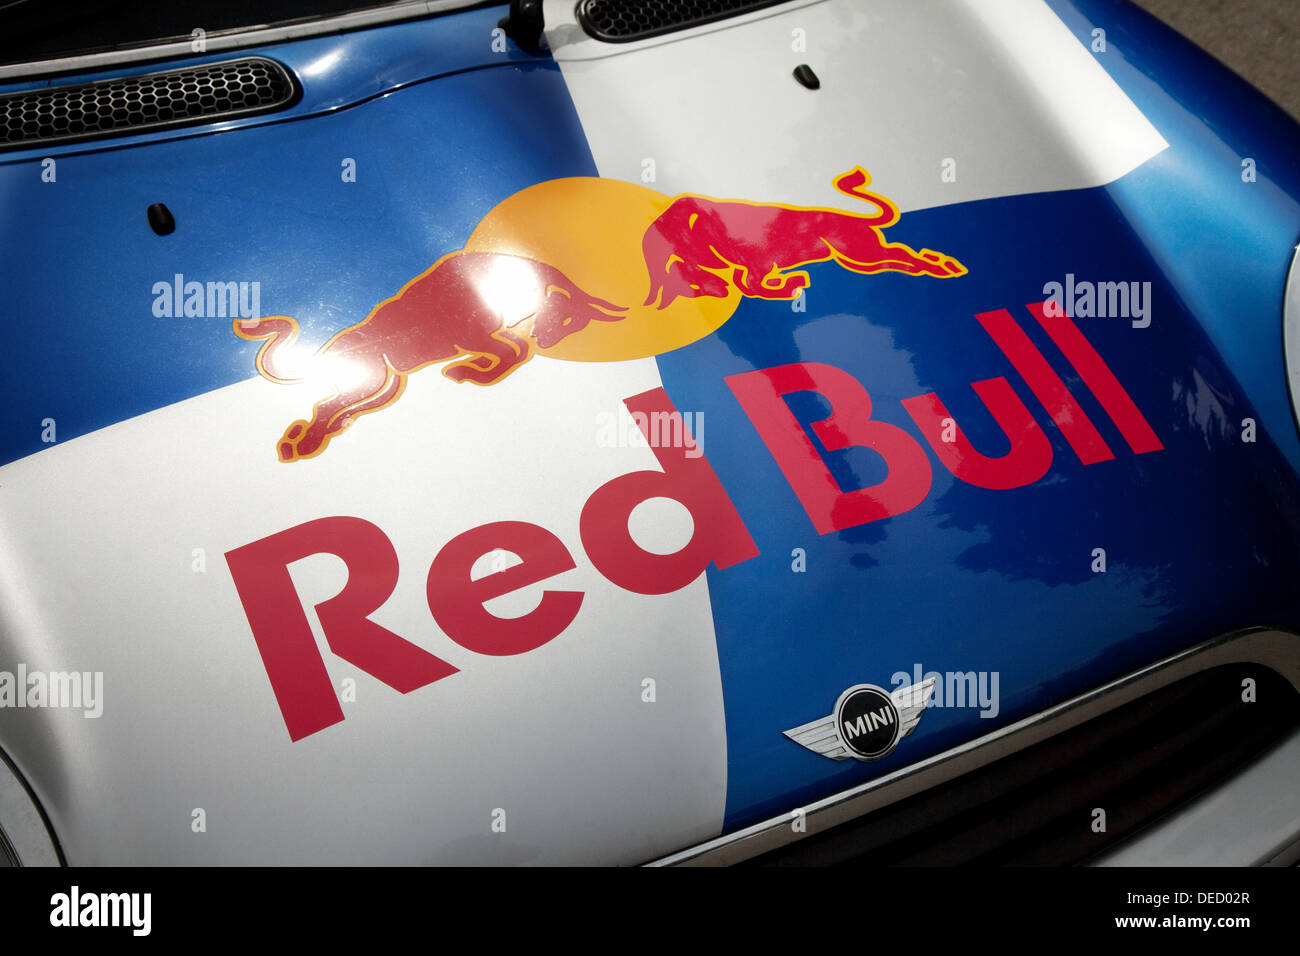 Red Bull energy drink mini car close up, UK - Stock Image